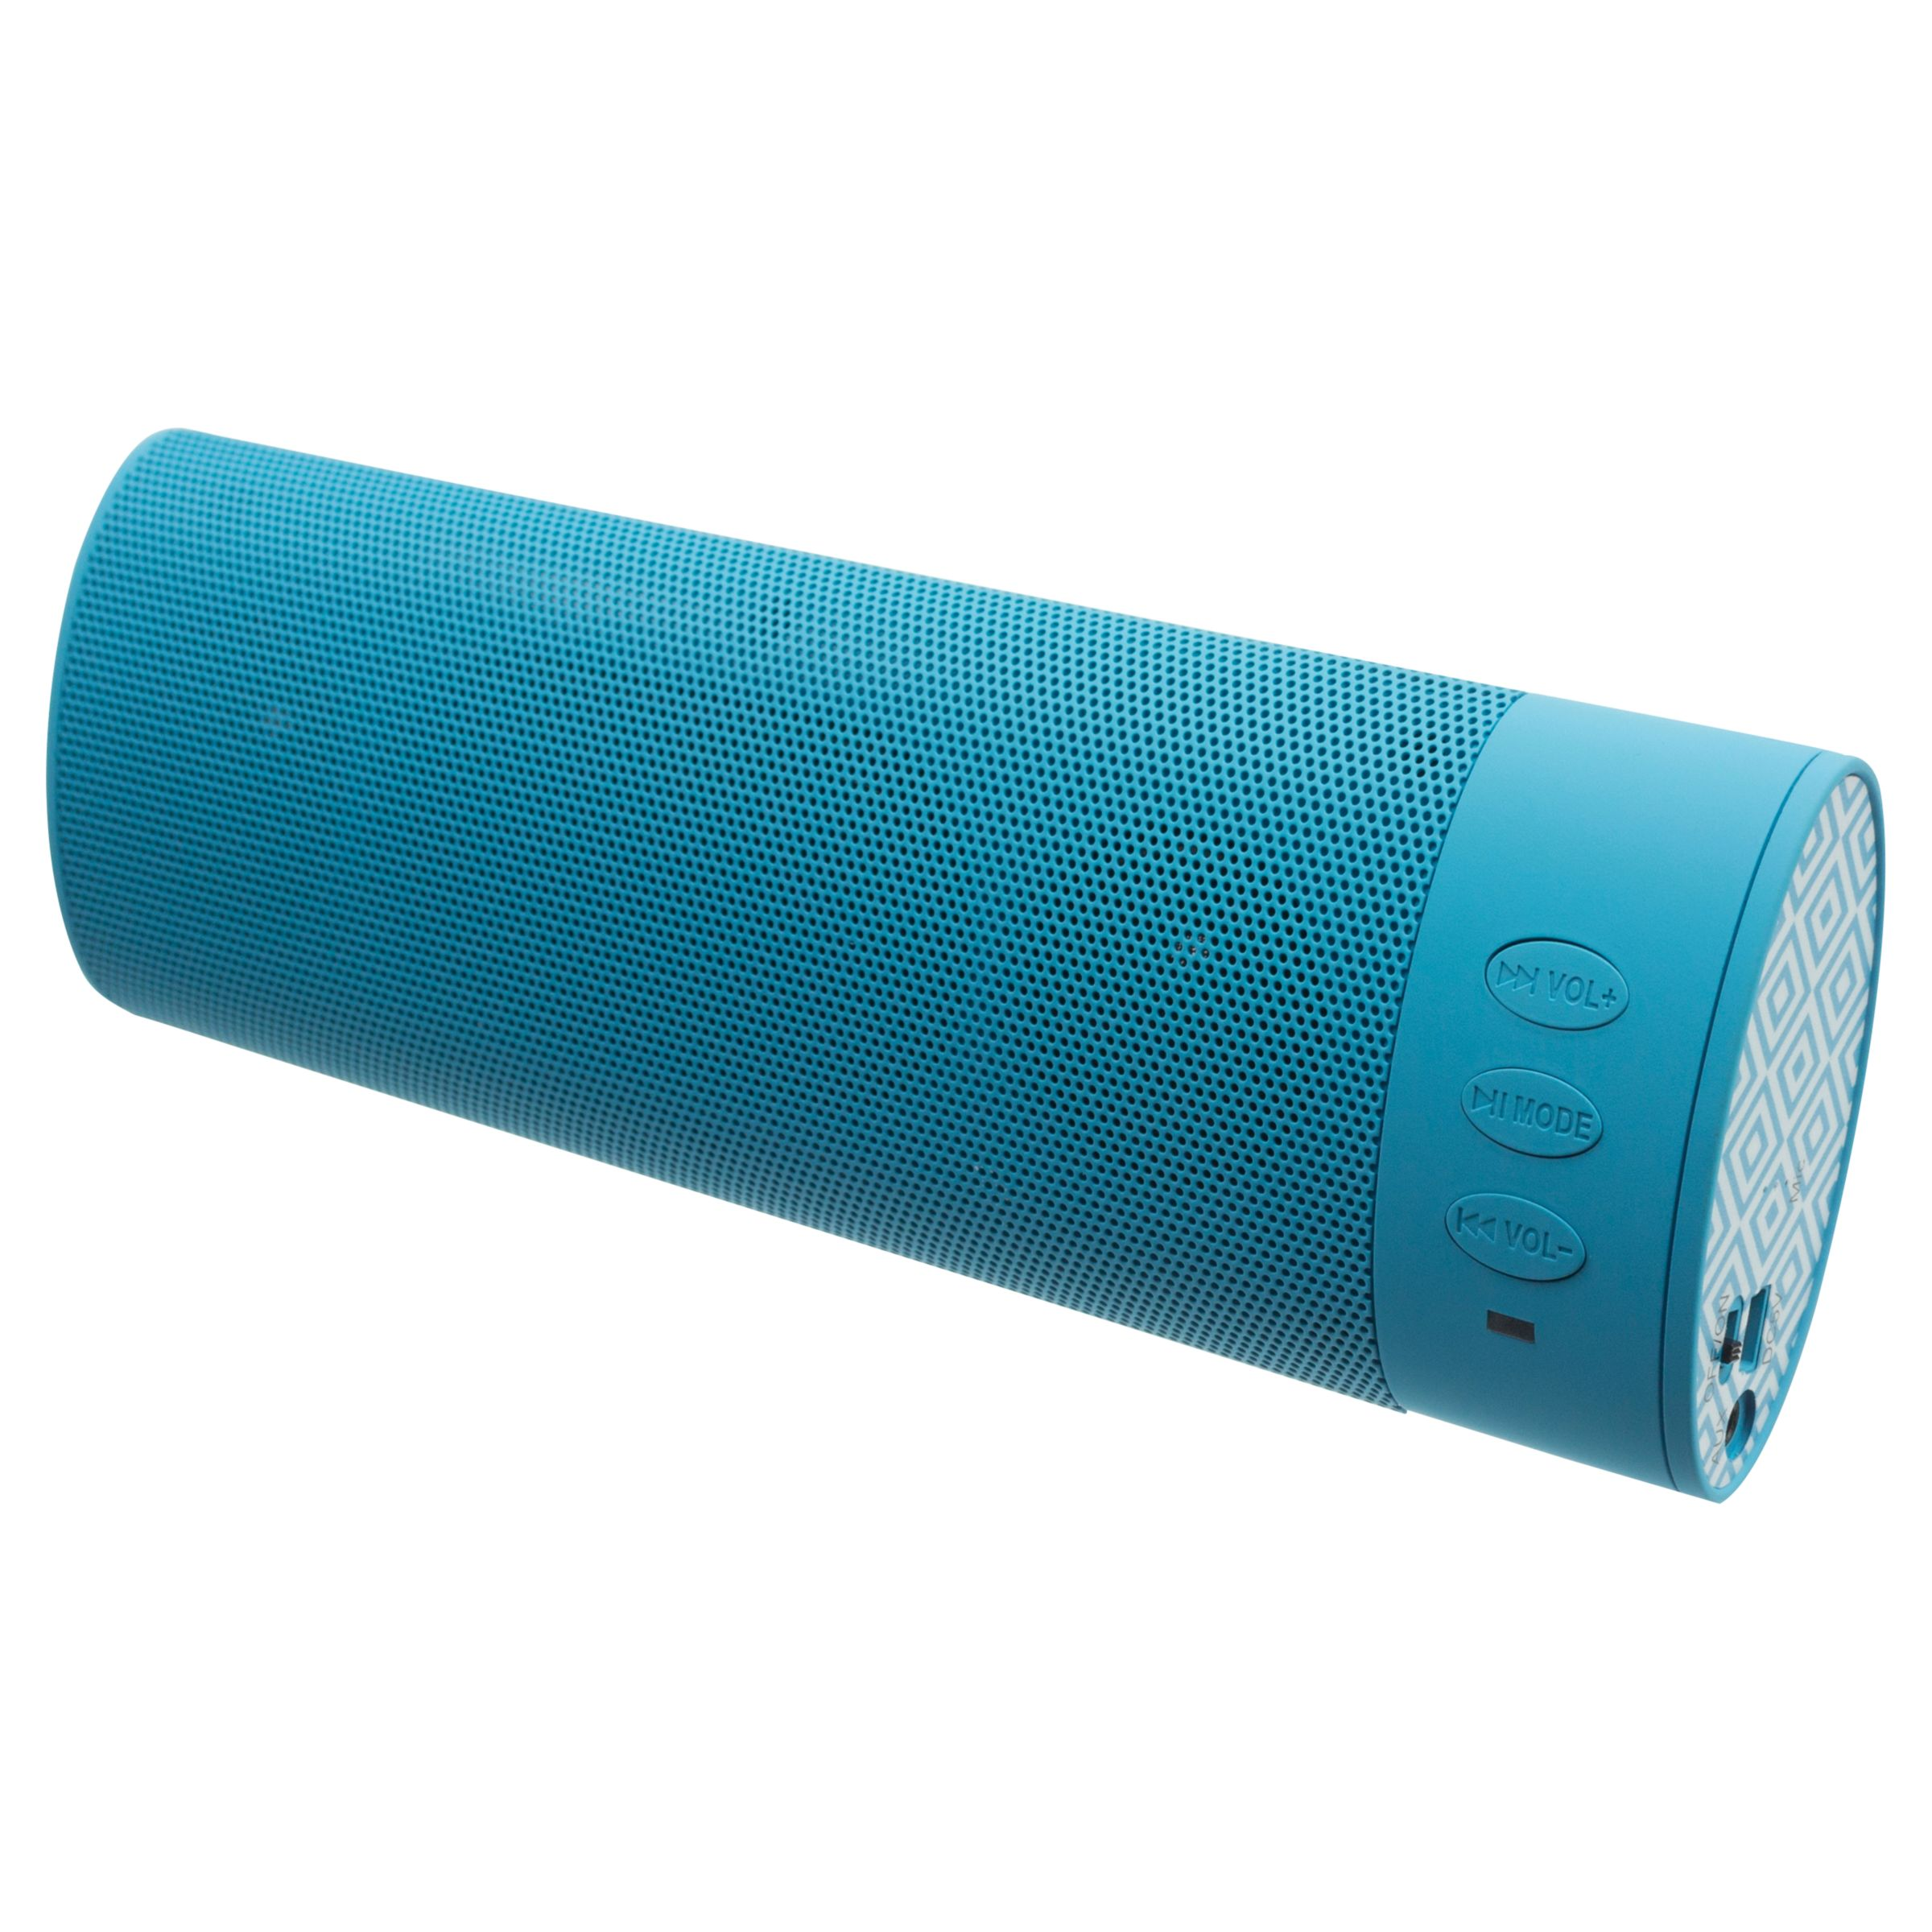 Kitsound KitSound Boombar Bluetooth Portable Speaker with Built-In Mic